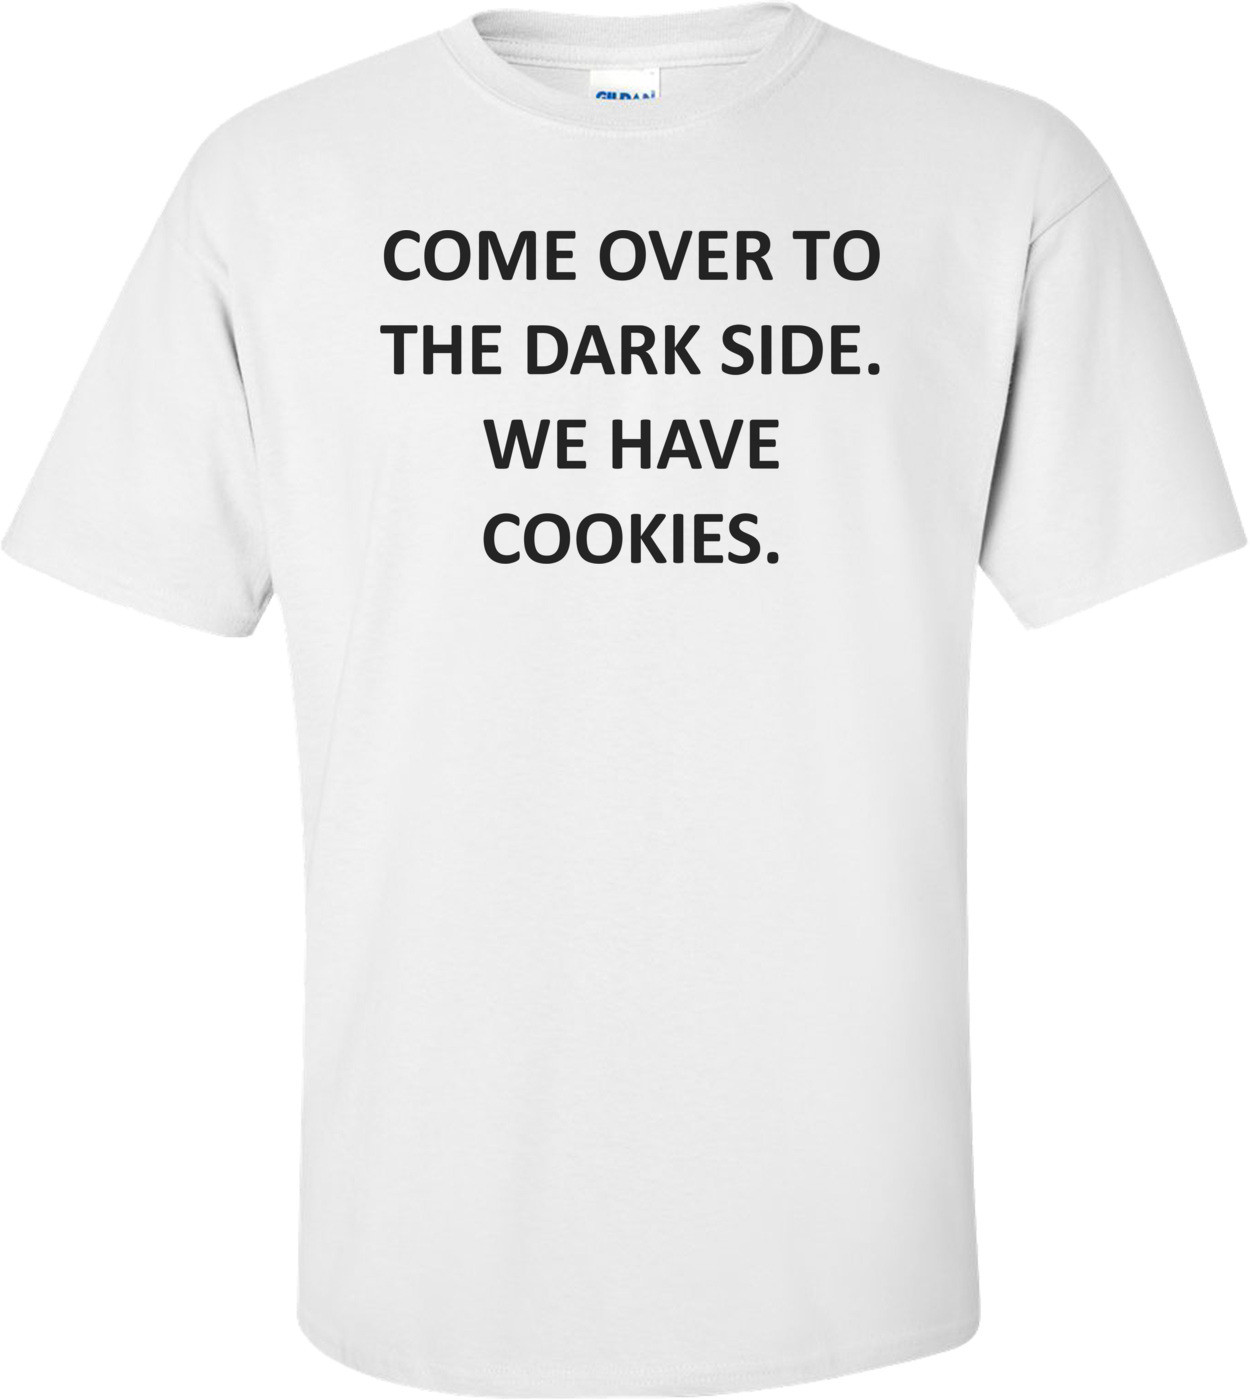 COME OVER TO THE DARK SIDE. WE HAVE COOKIES. Shirt